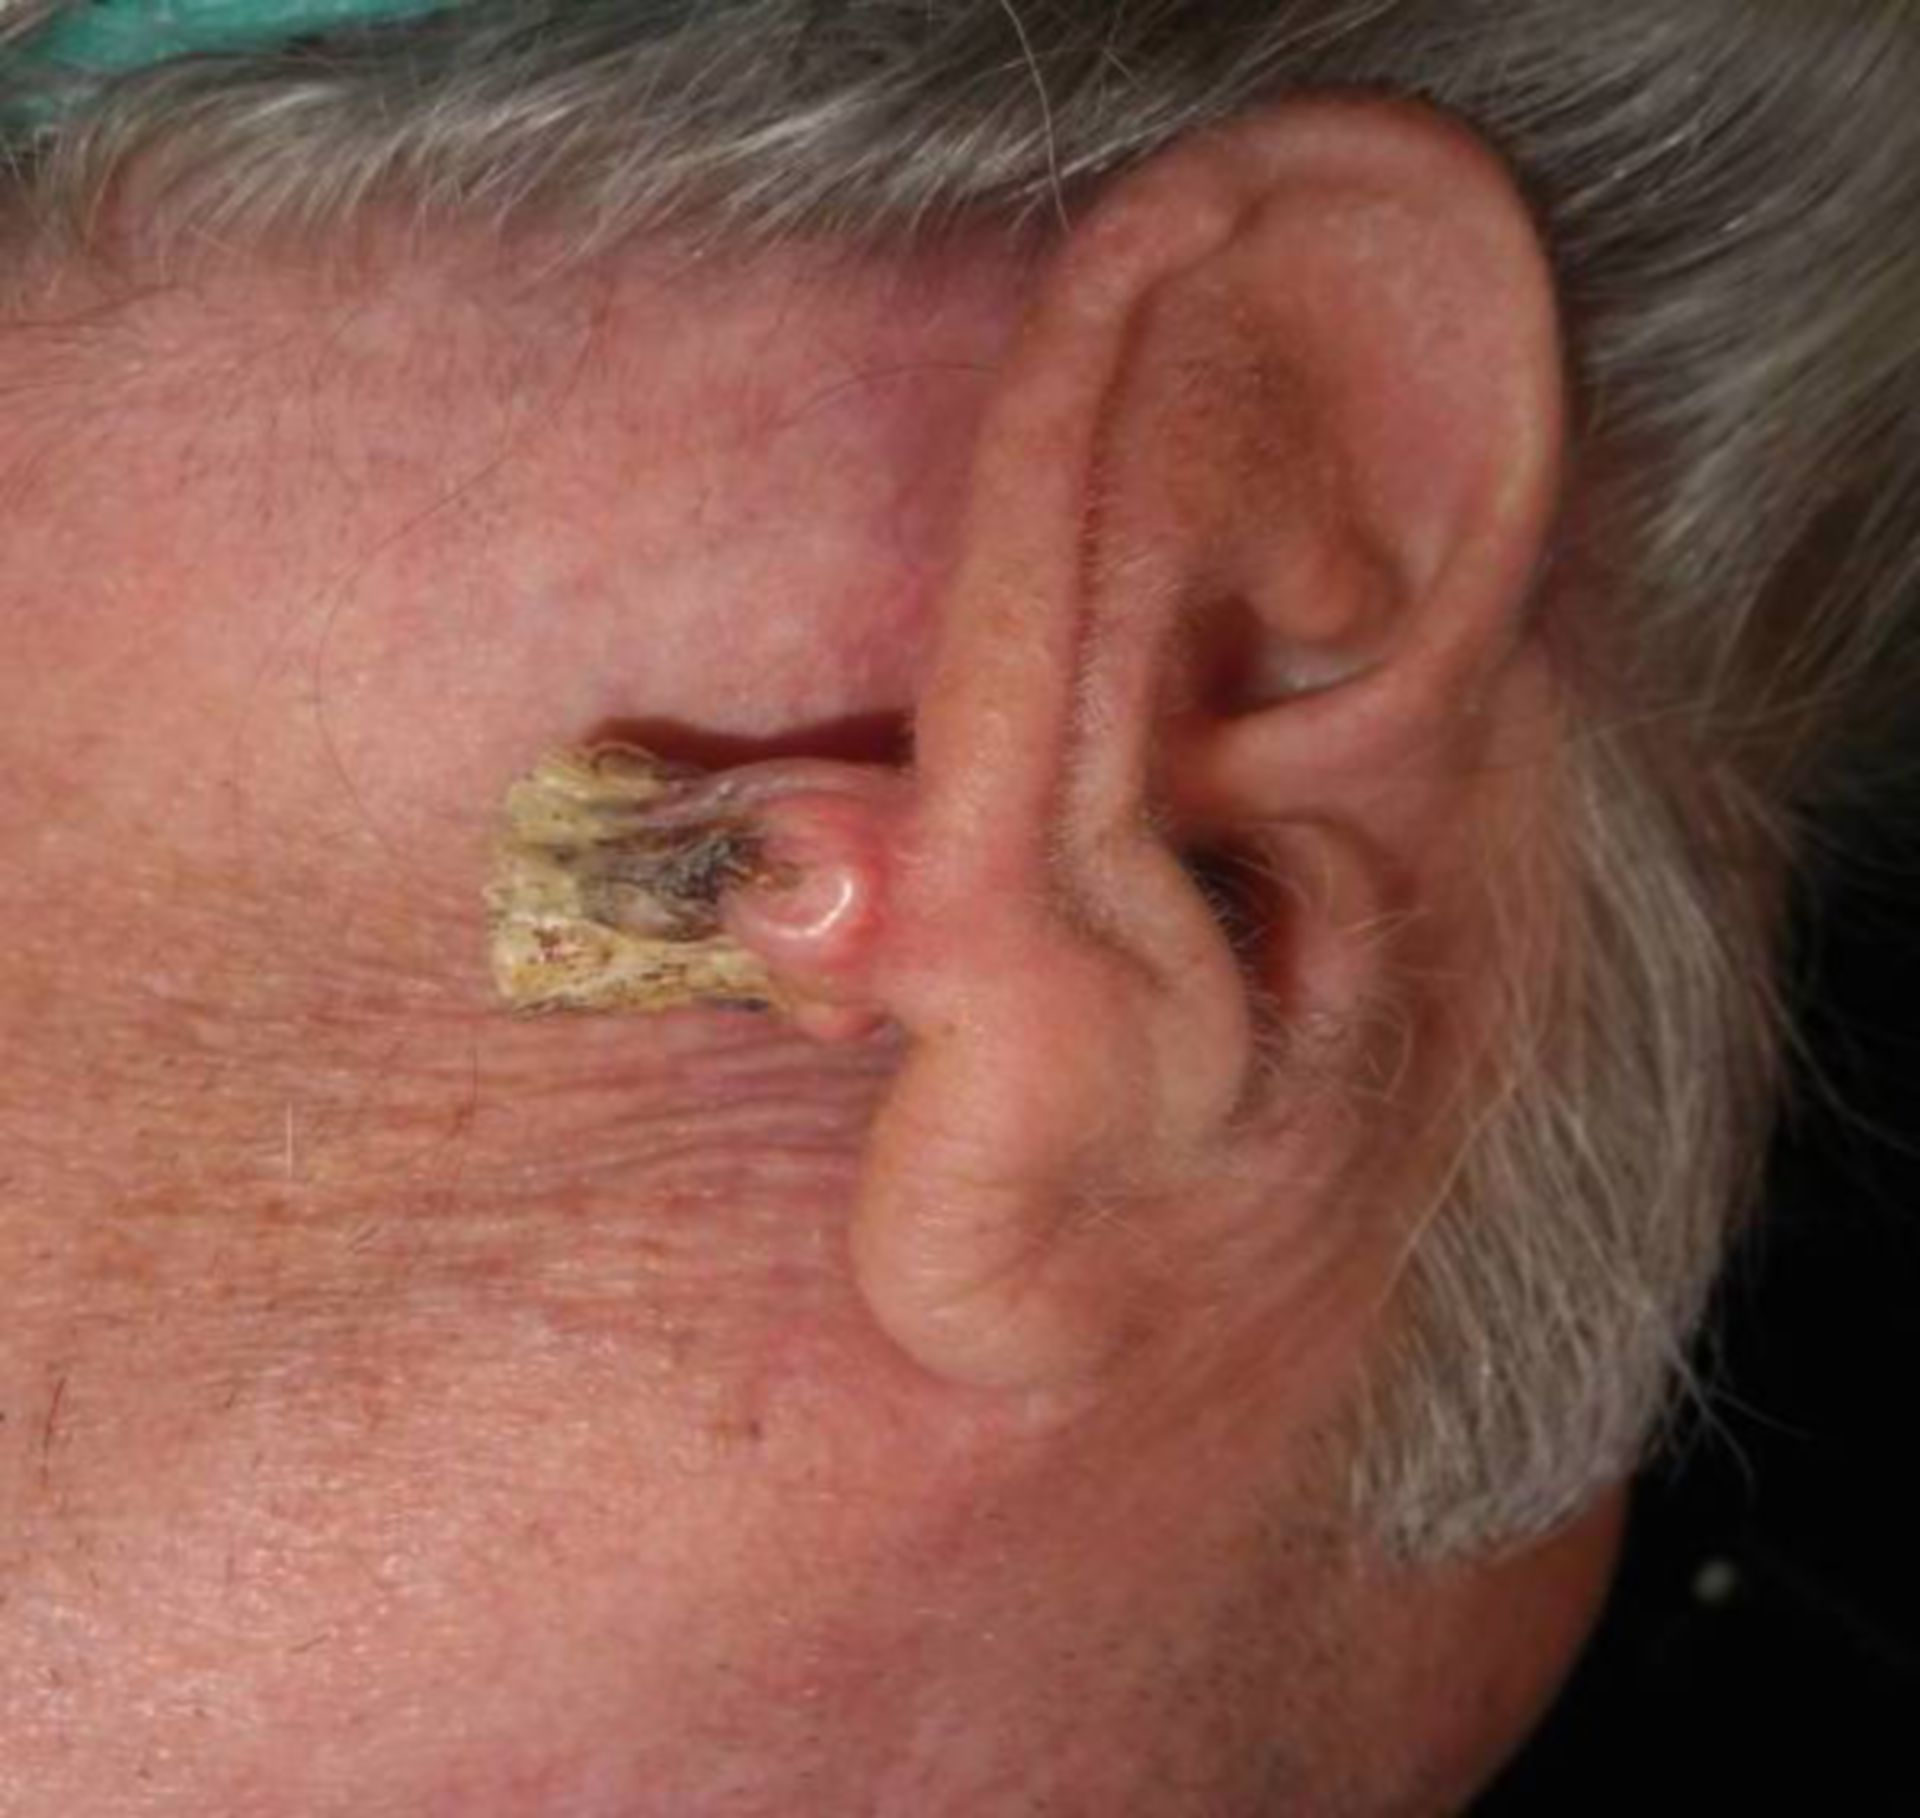 Tumor right auricle